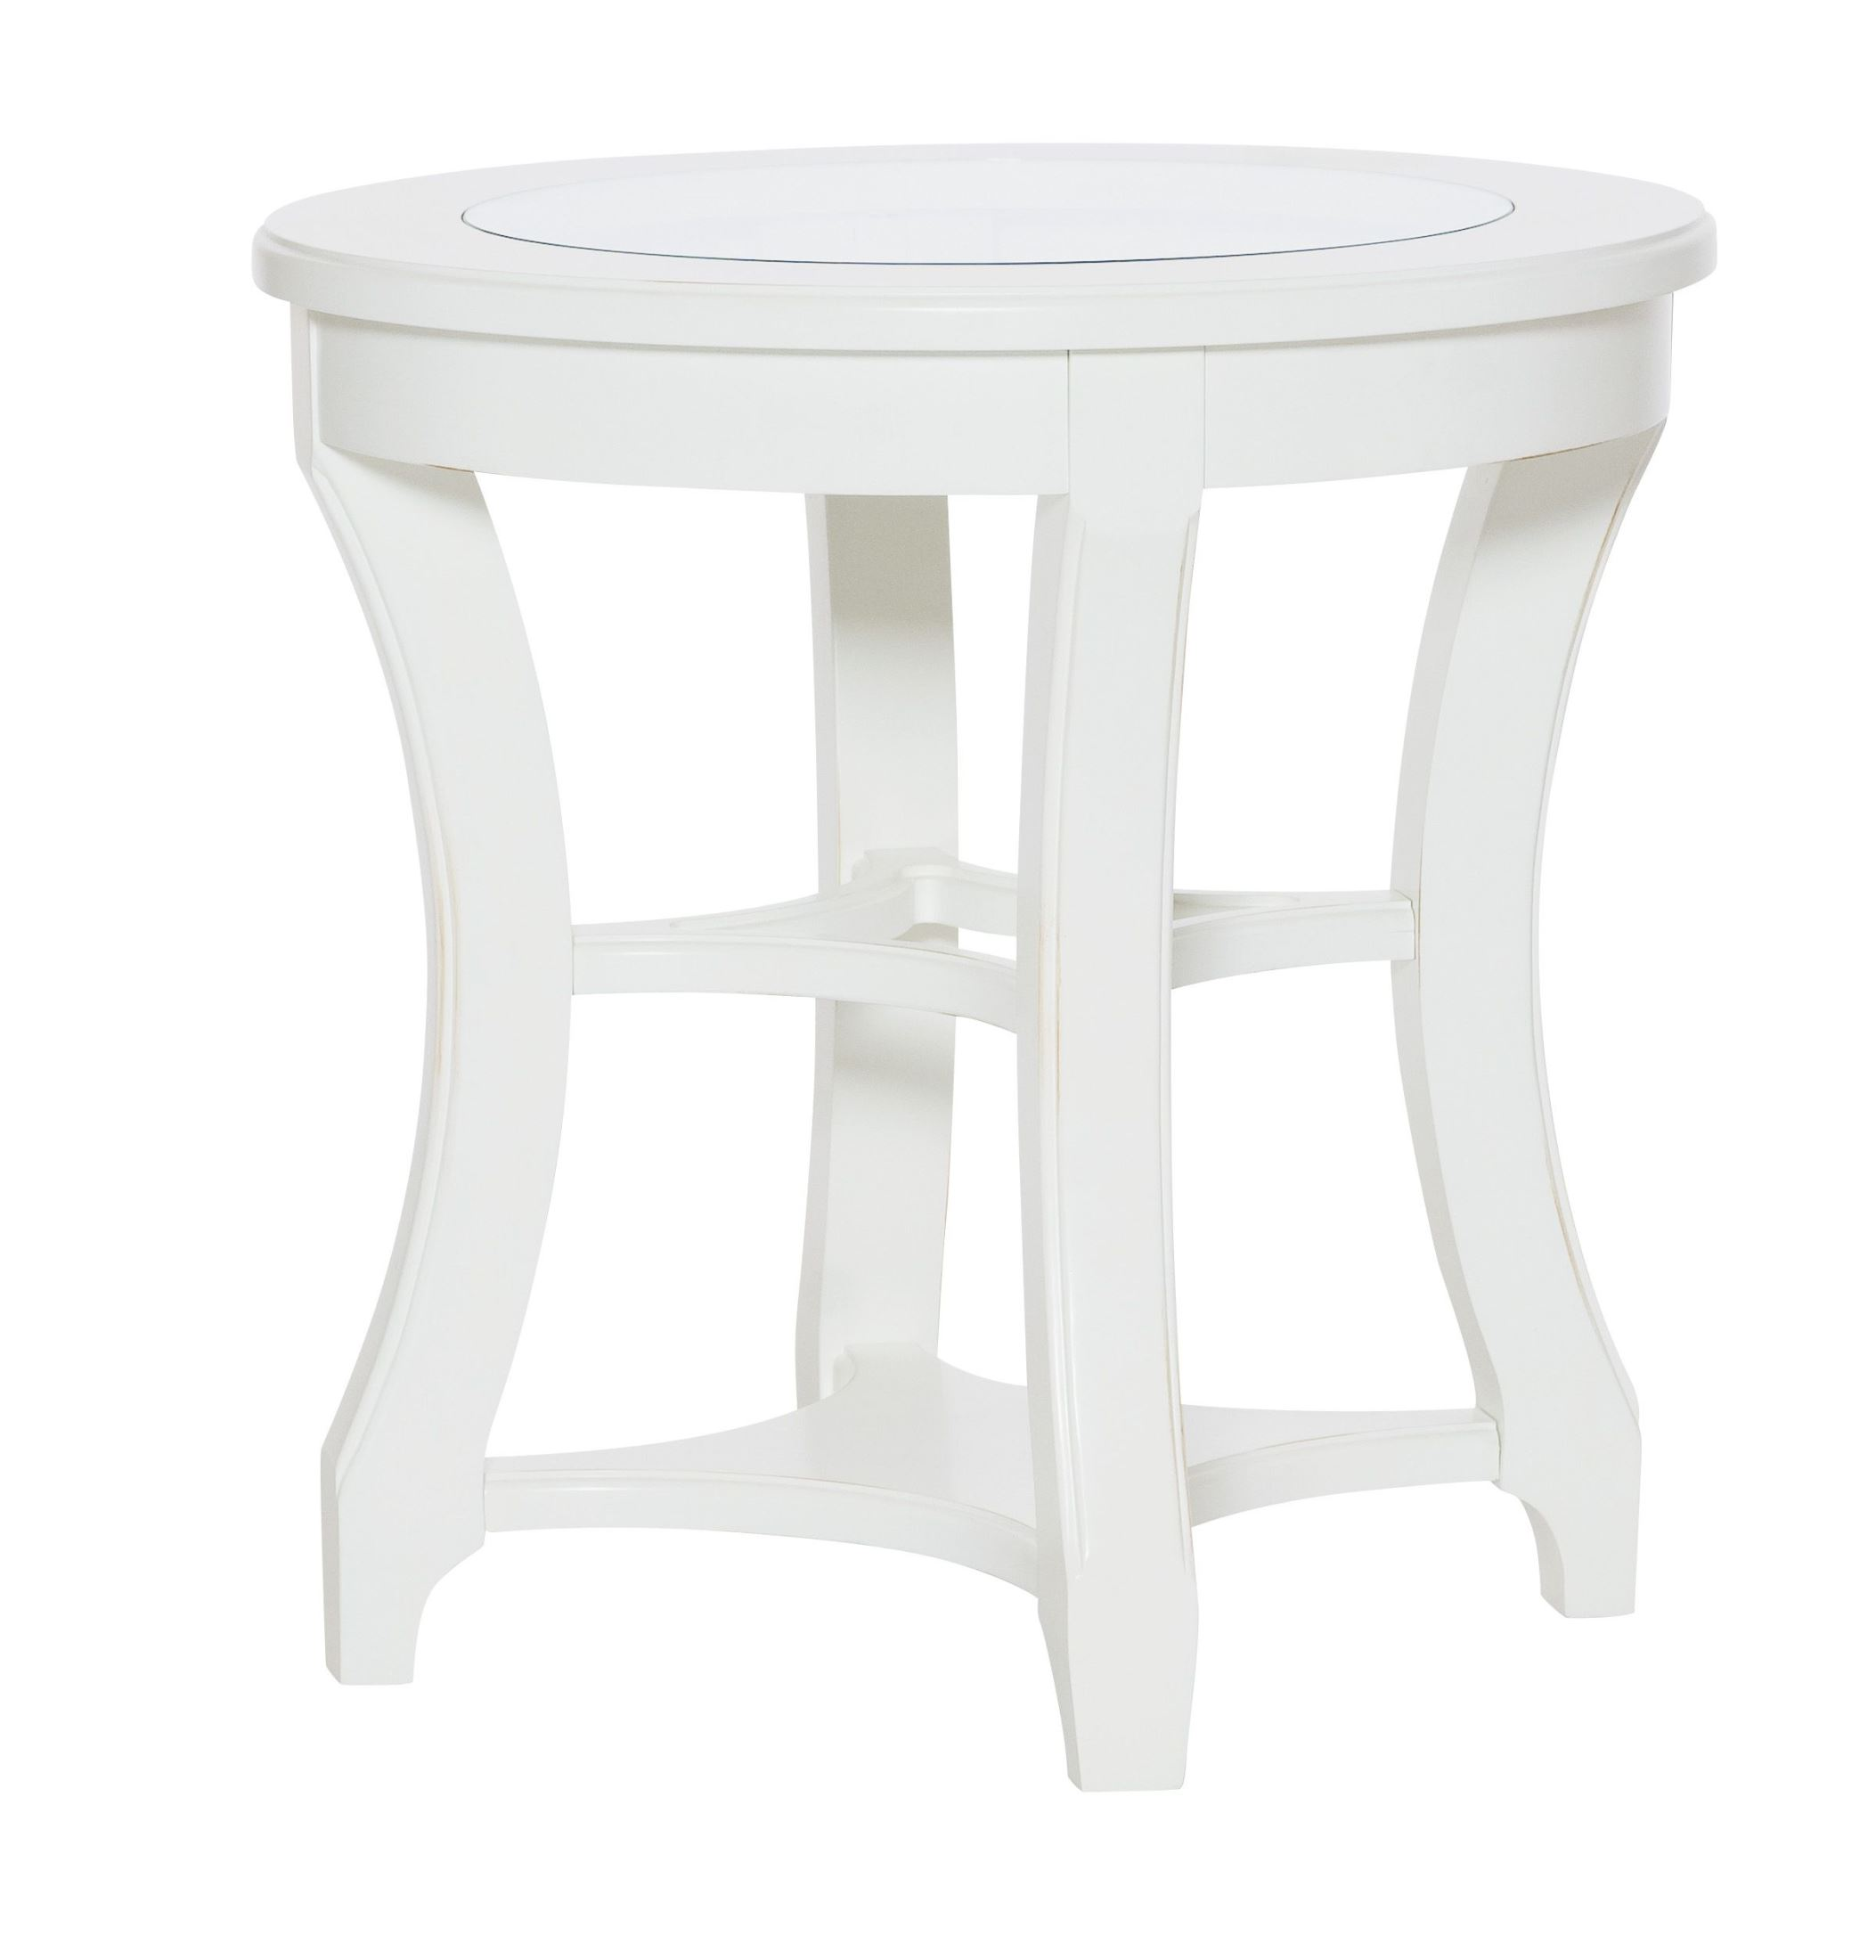 hammary lynn haven dover white round end table lynn haven collection 8 reviews. Black Bedroom Furniture Sets. Home Design Ideas